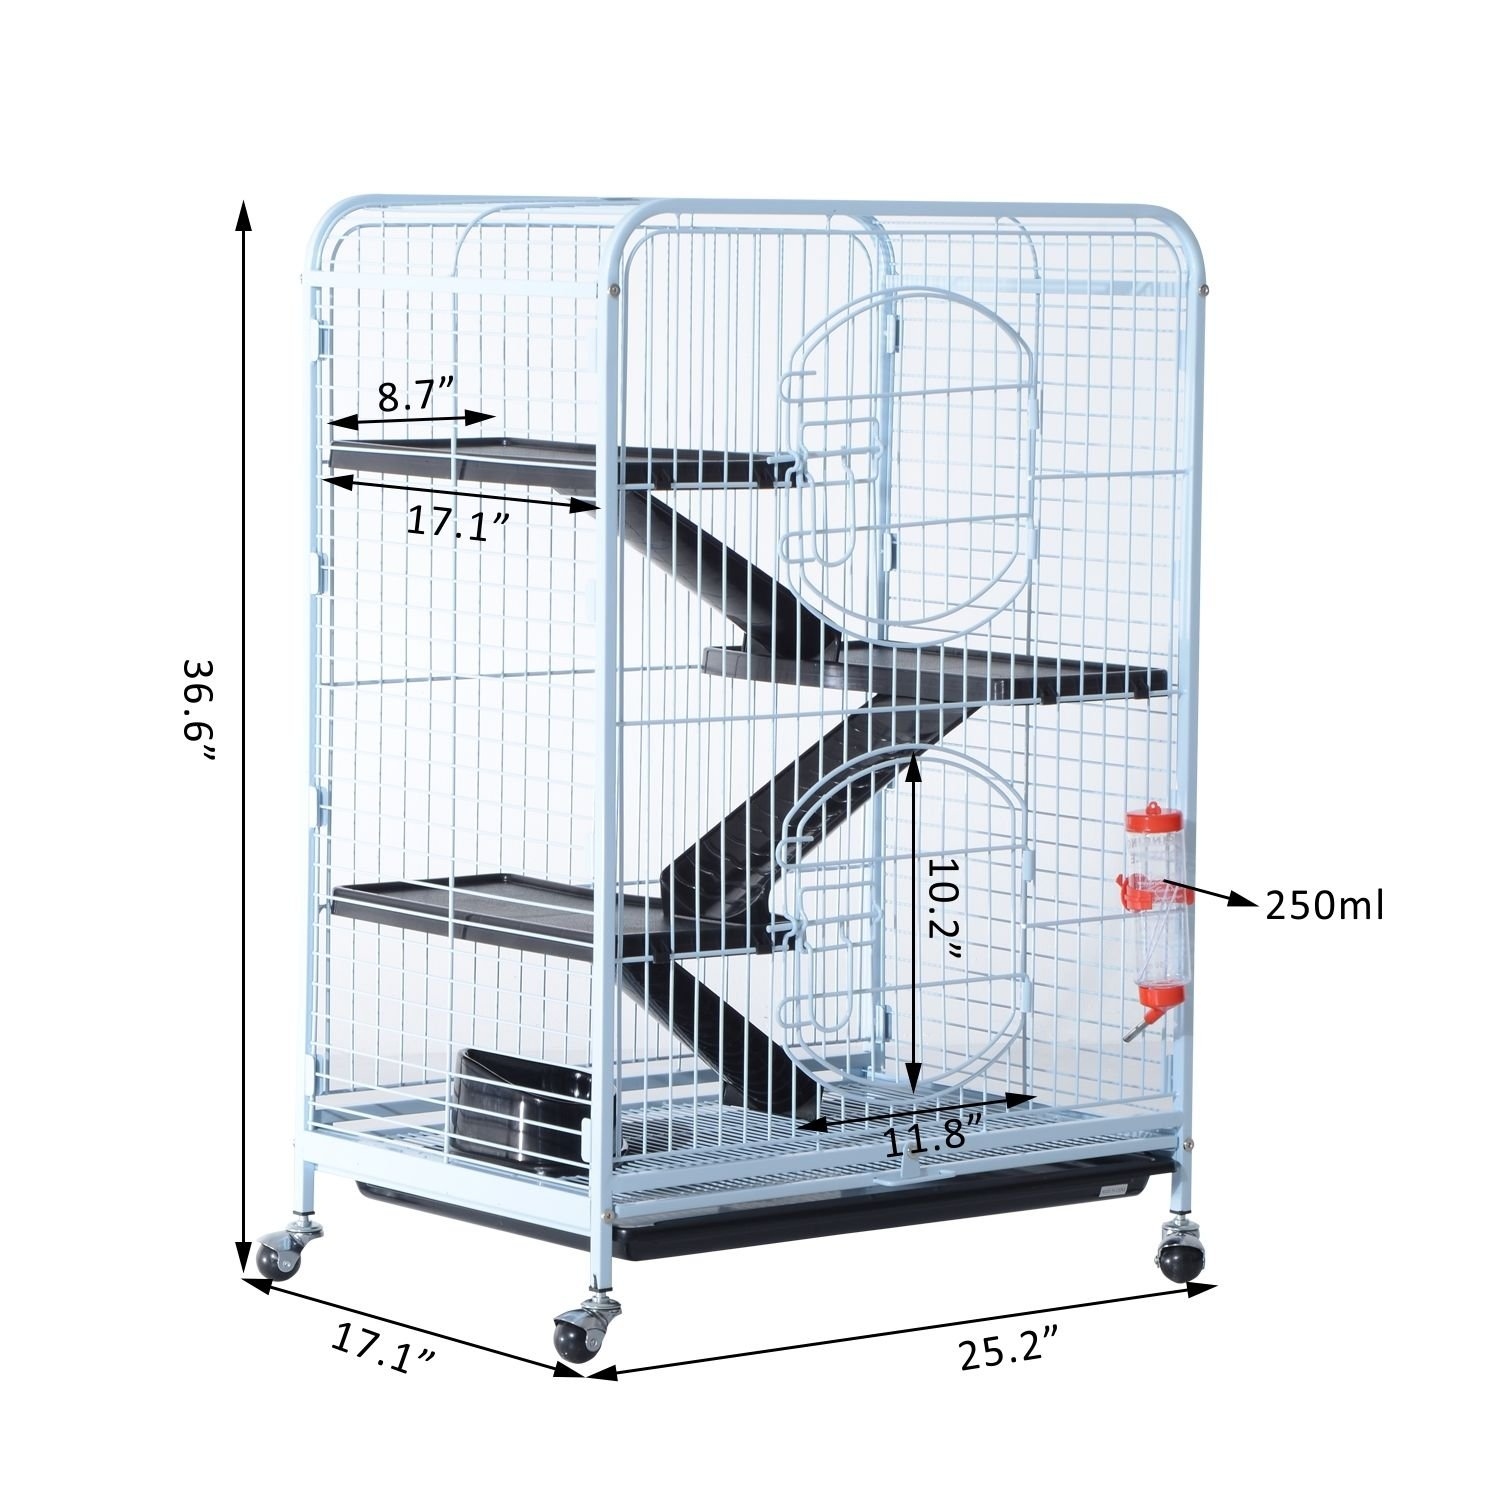 PawHut 37'' 4 Level Indoor Portable Pet Habitat Small Animal Cage Kit With Plastic Shelves And Ramps - White by PawHut (Image #6)